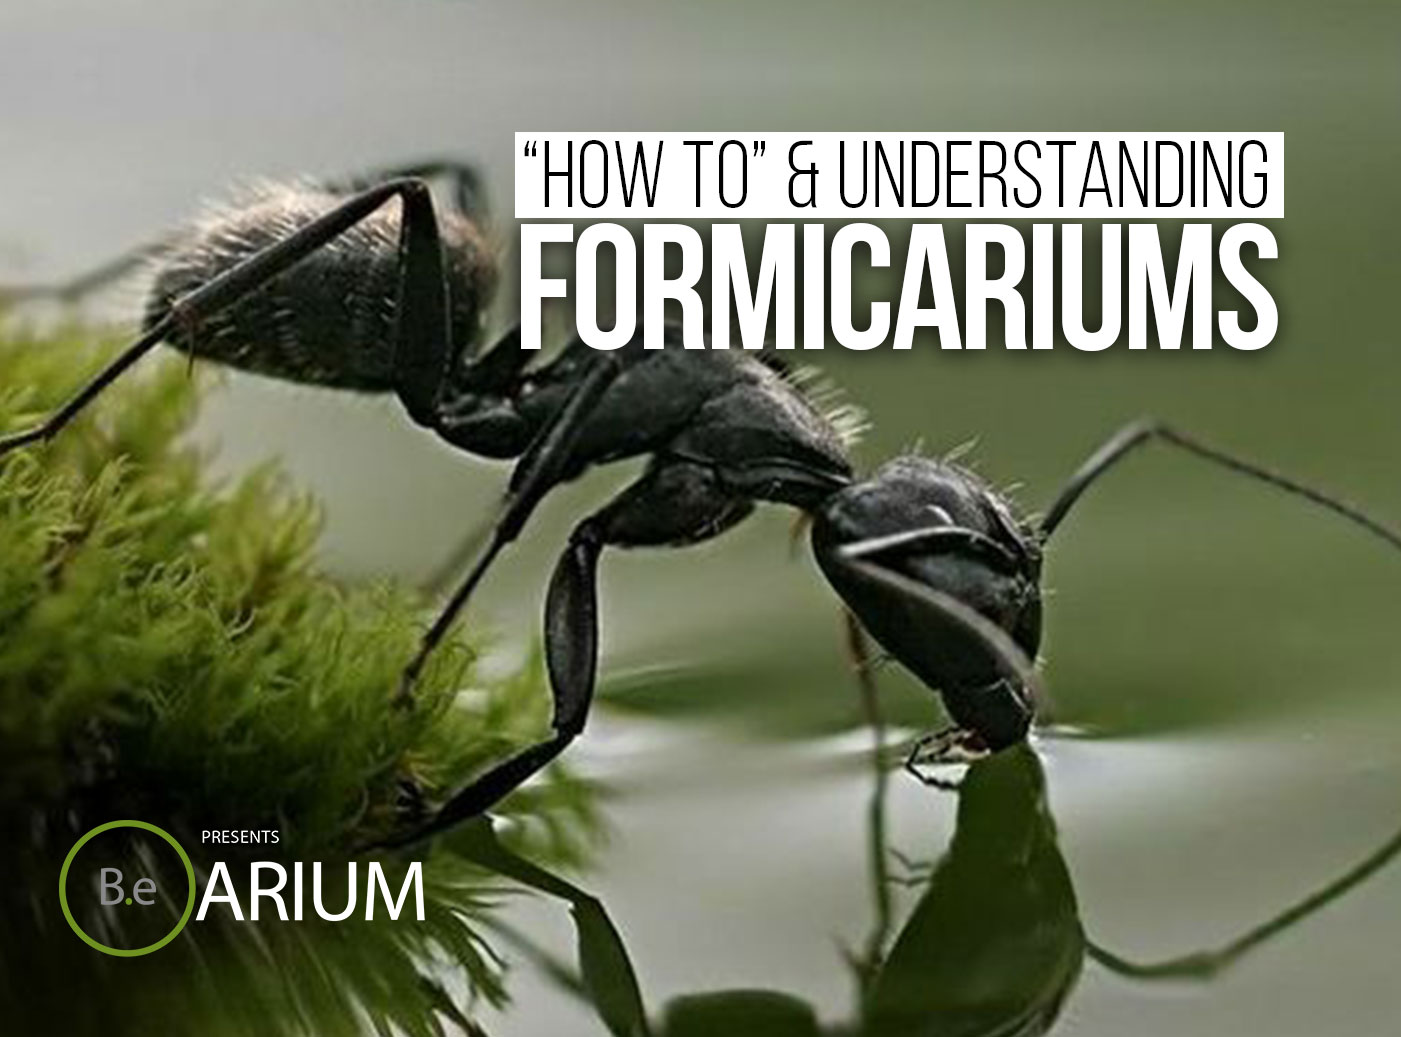 Formicarium (Ant Farm) Care Guide